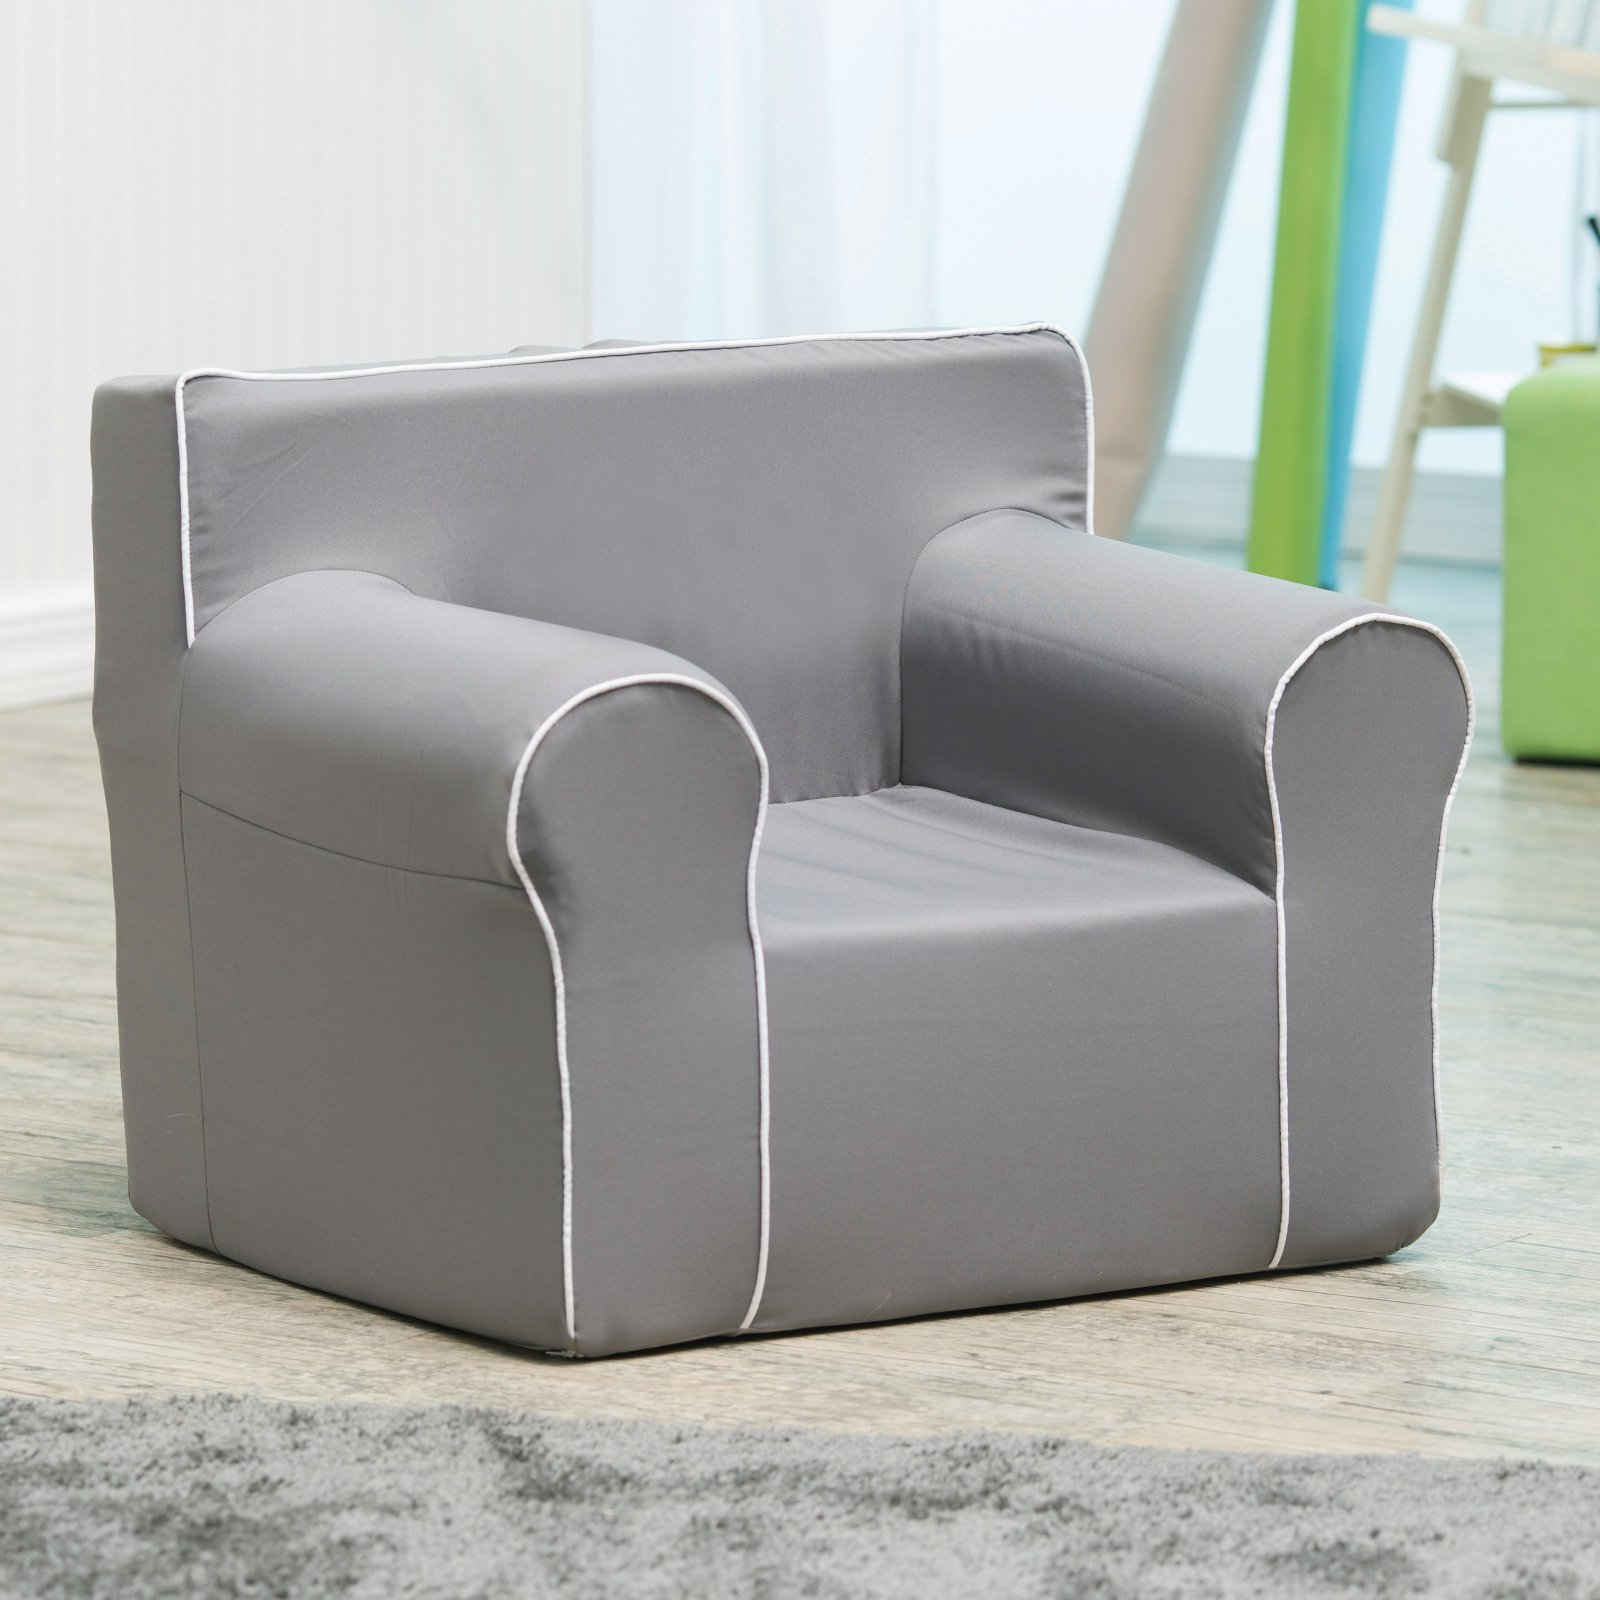 Here and There Kids Chair - Gray Canvas